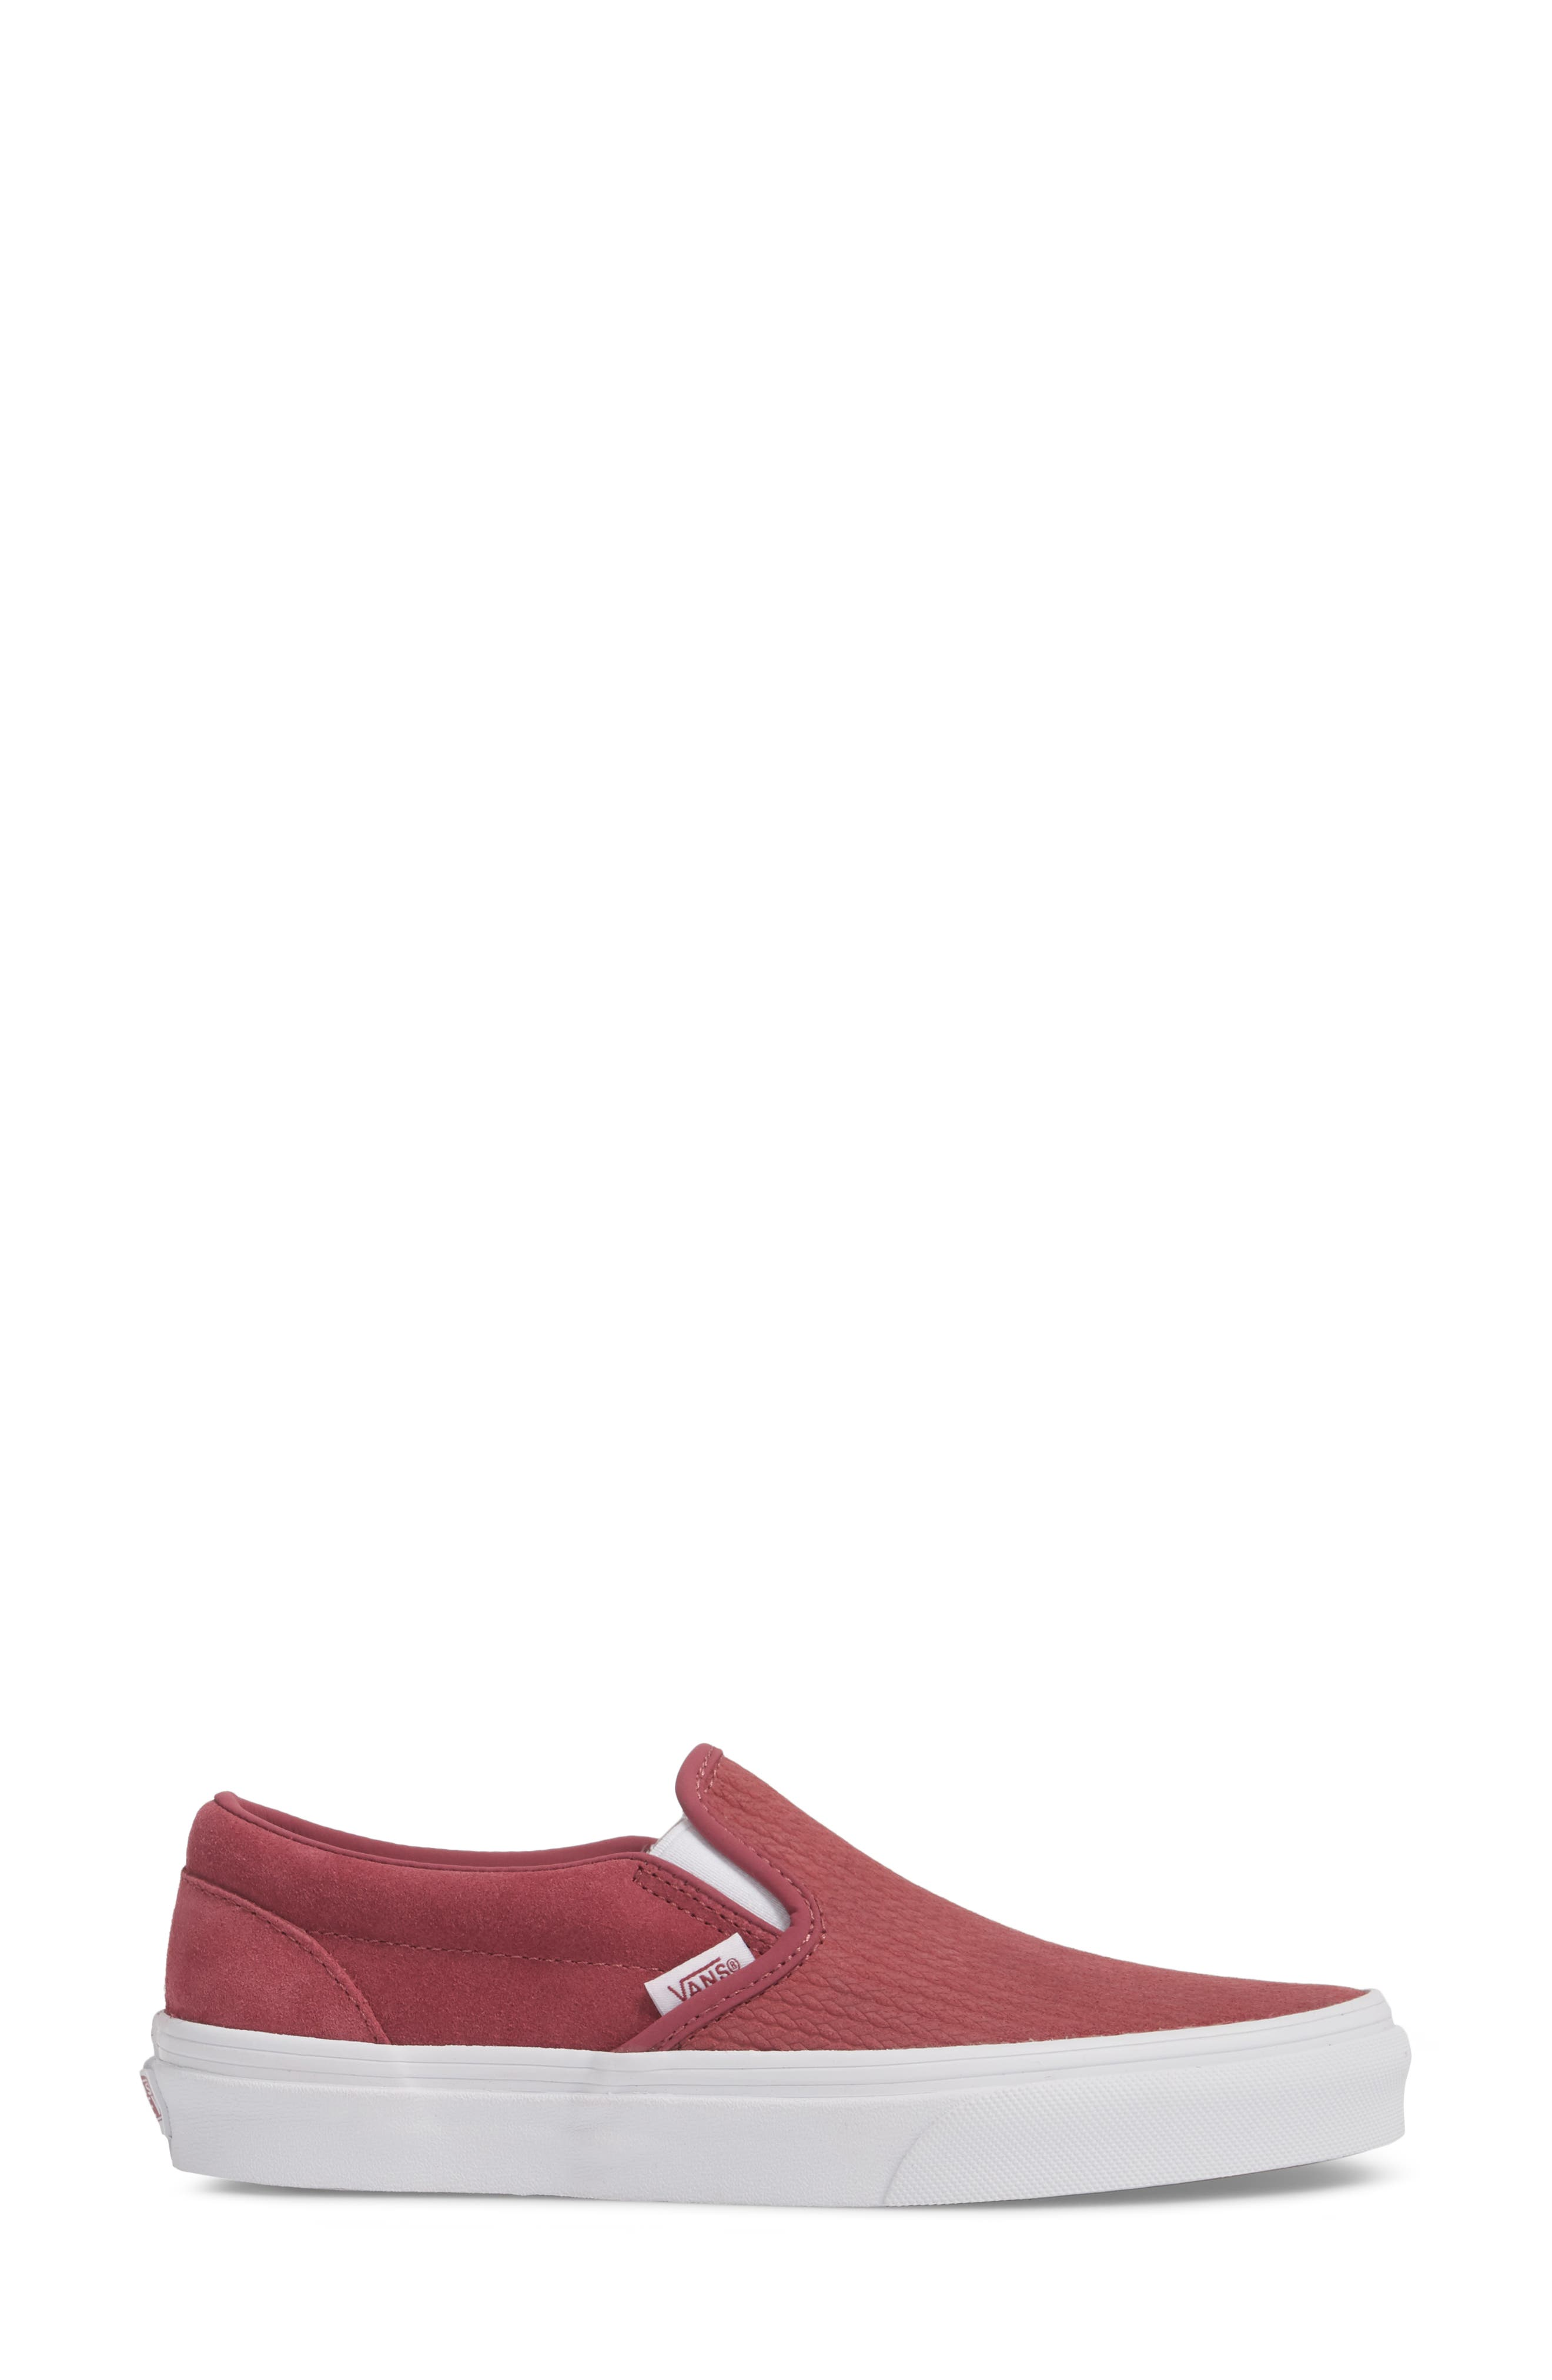 Classic Slip-On Sneaker,                             Alternate thumbnail 211, color,